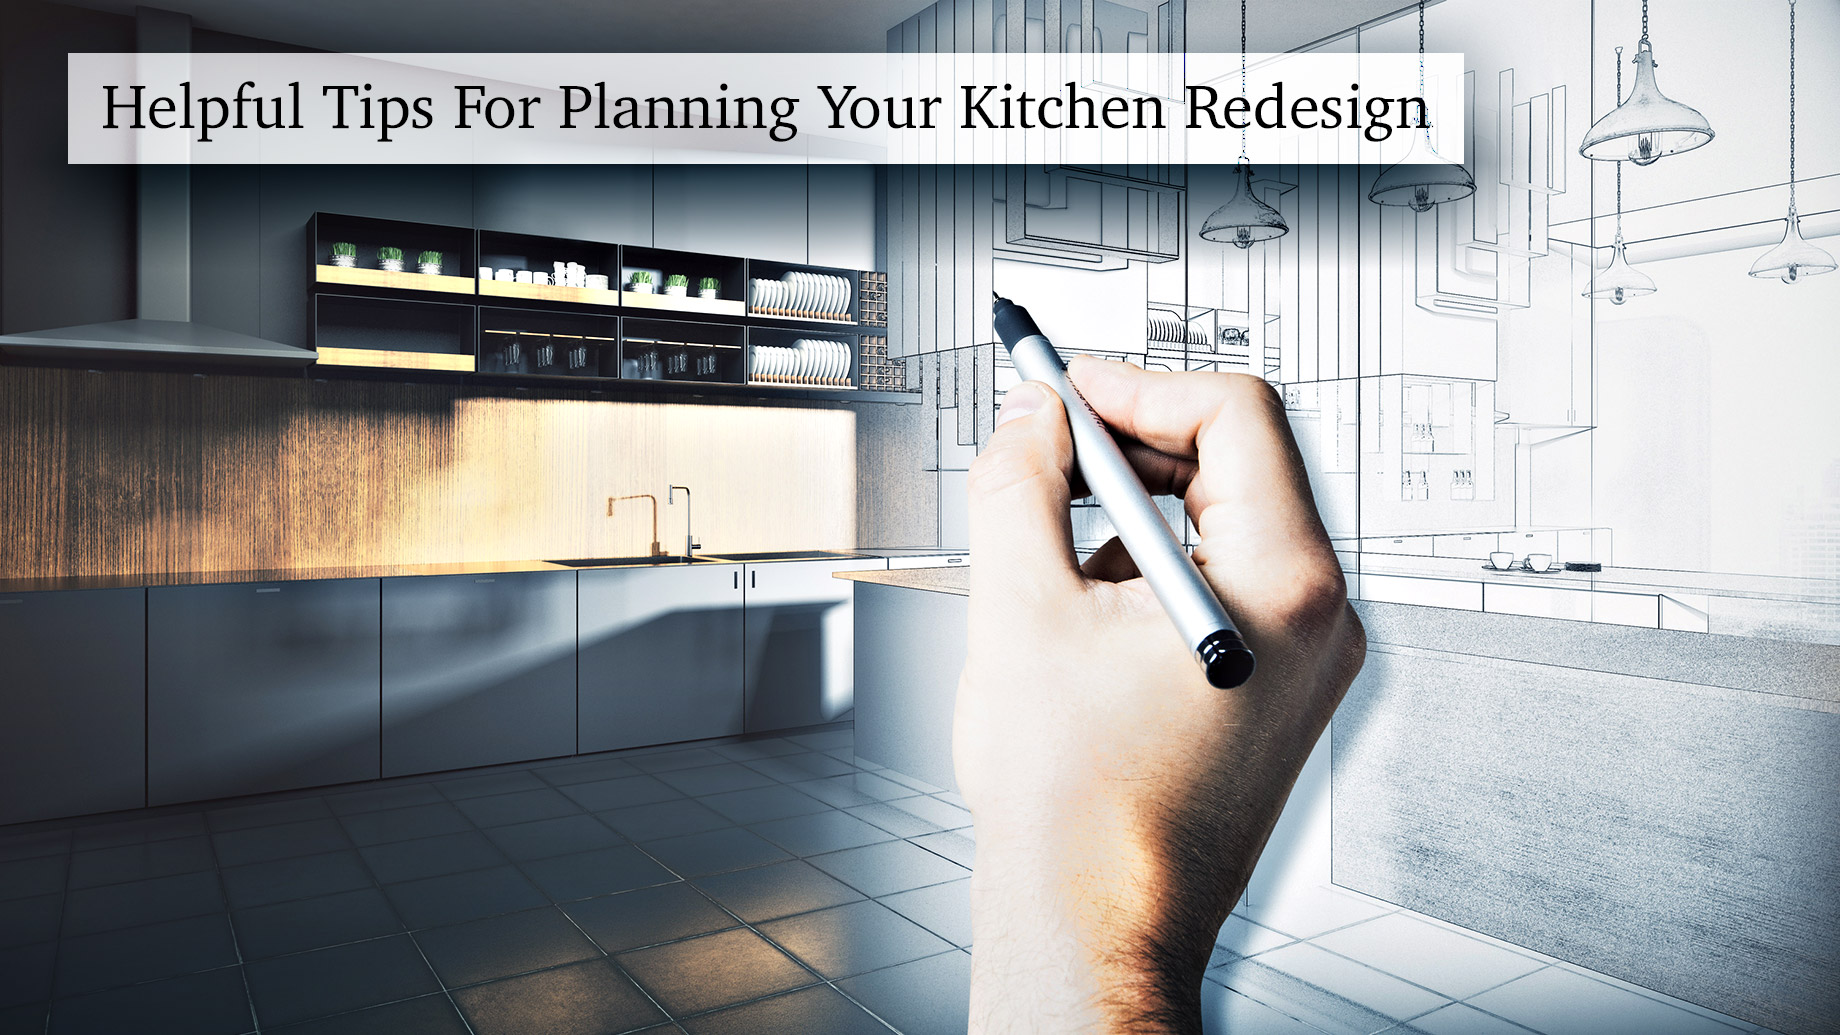 Helpful Tips For Planning Your Kitchen Redesign